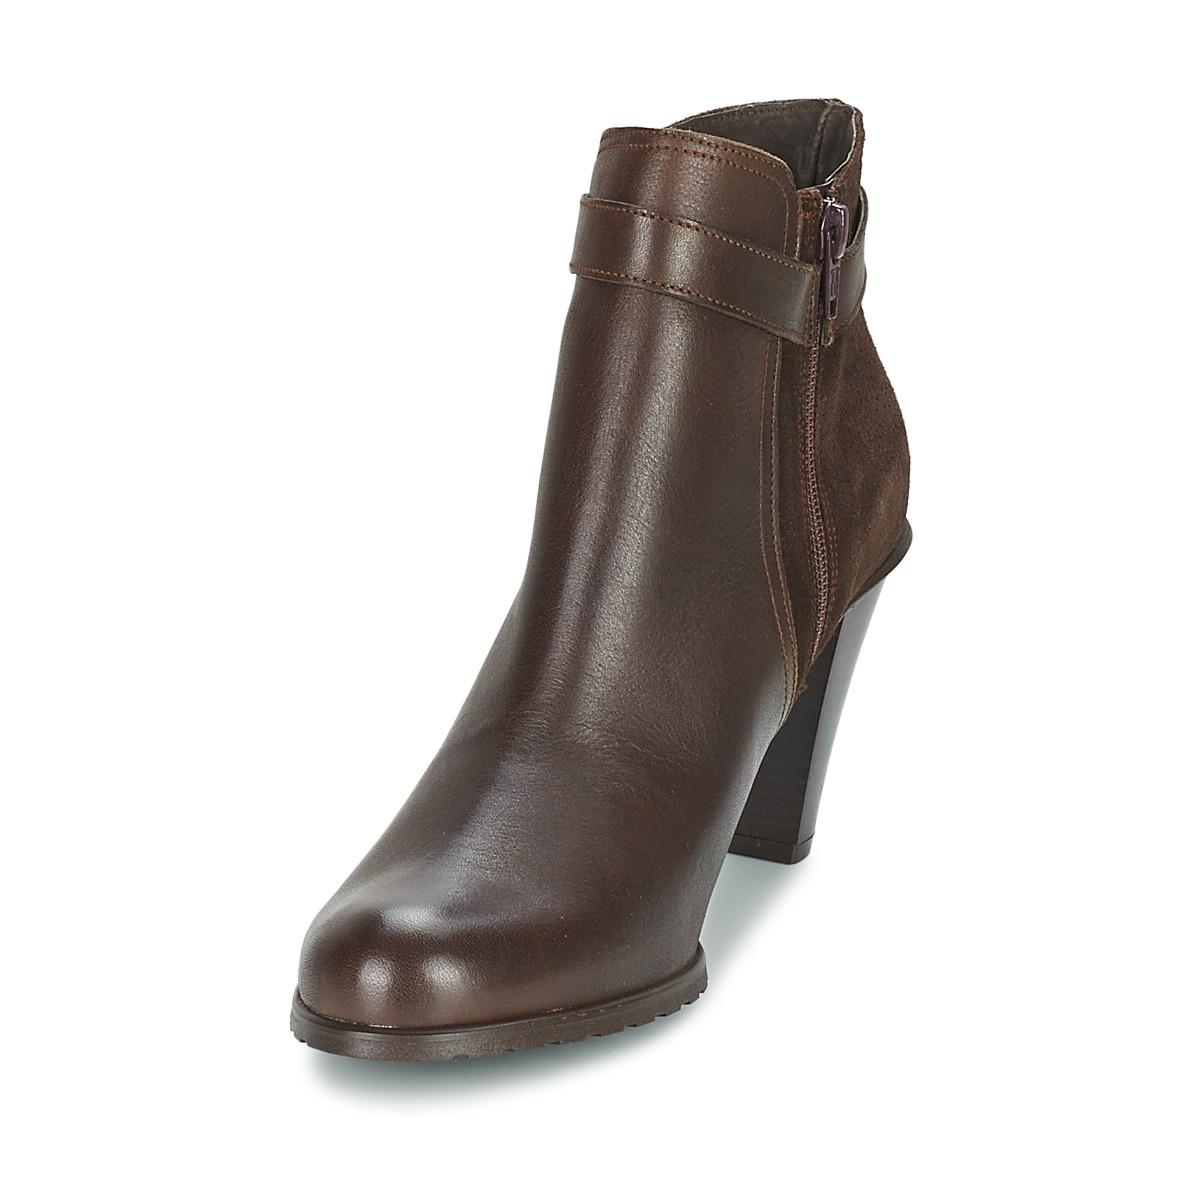 So Size Leather Moseka Women's Low Ankle Boots In Brown - Save 11%